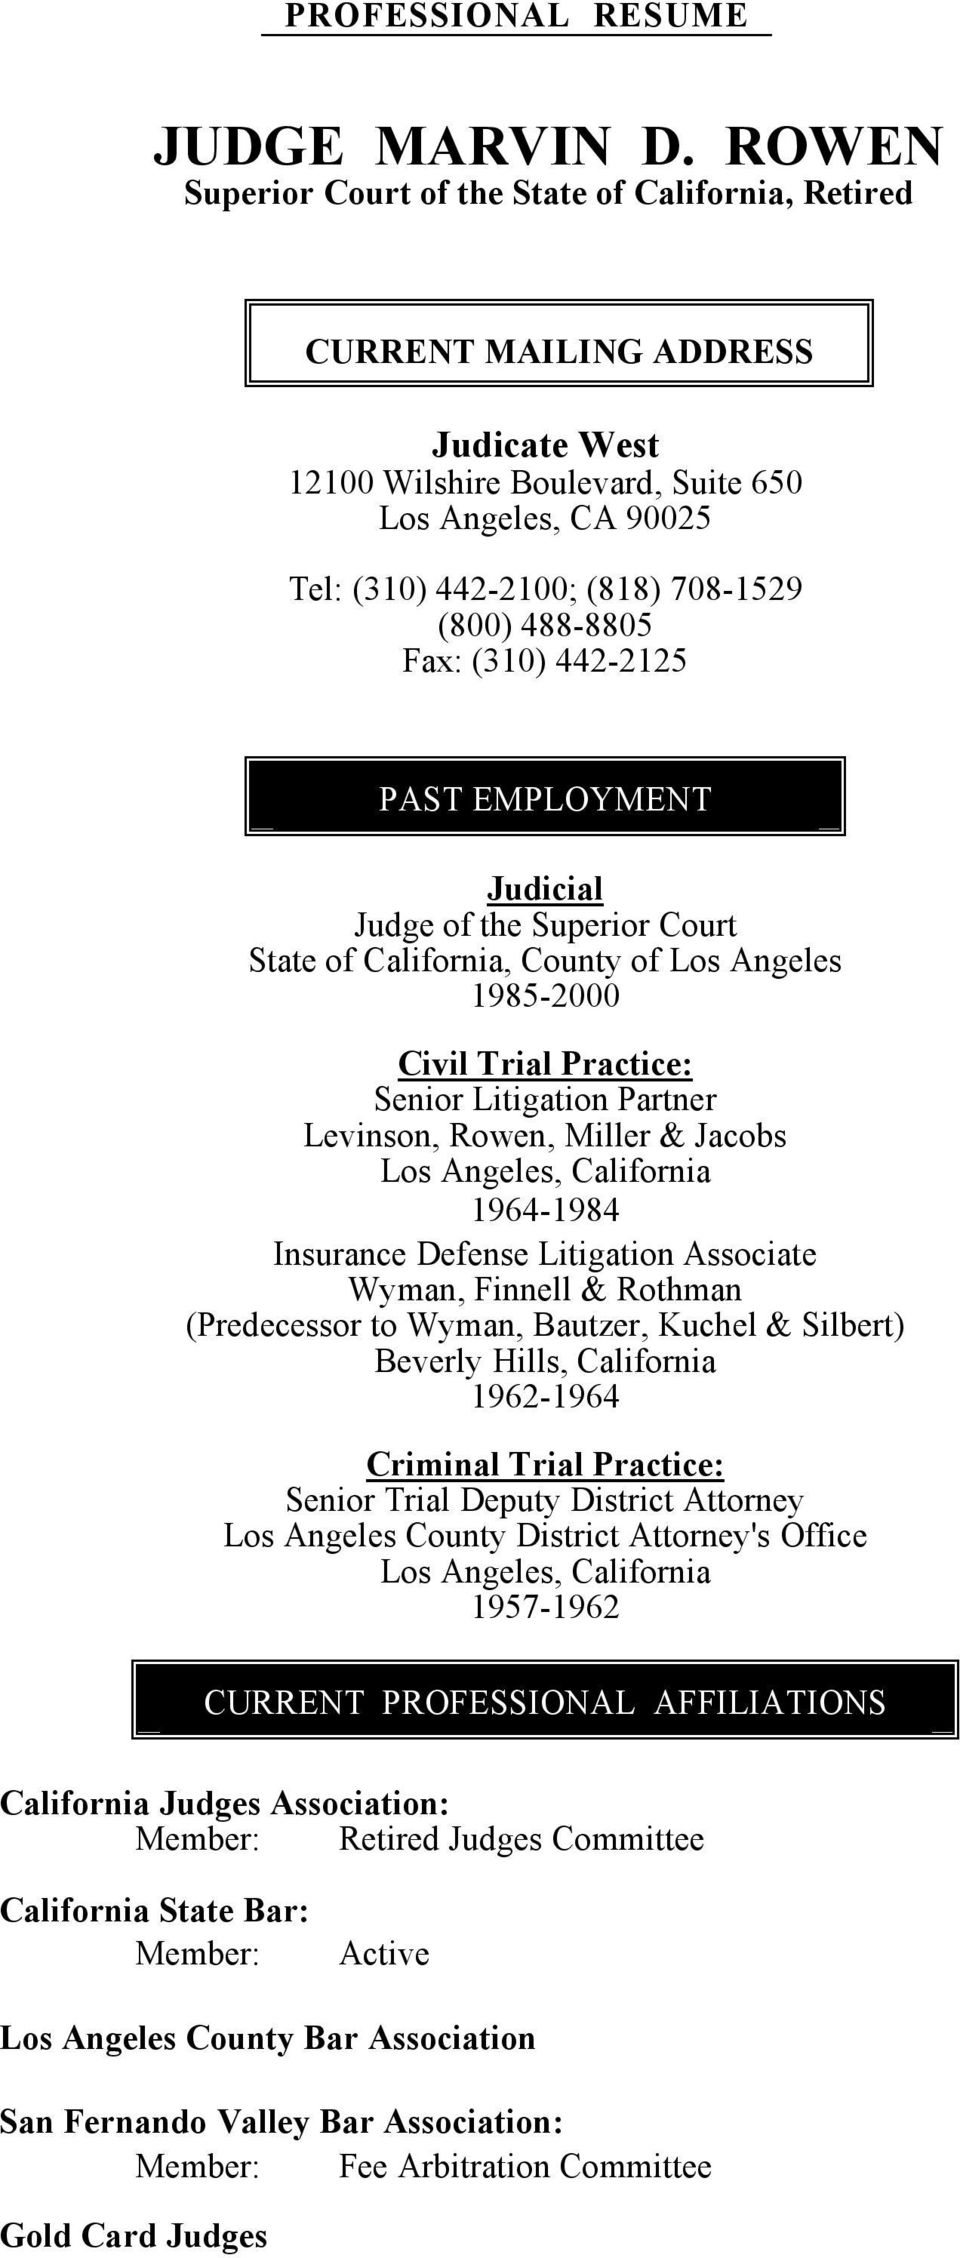 488-8805 Fax: (310) 442-2125 PAST EMPLOYMENT Judicial Judge of the Superior Court State of California, County of Los Angeles 1985-2000 Civil Trial Practice: Senior Litigation Partner Levinson, Rowen,